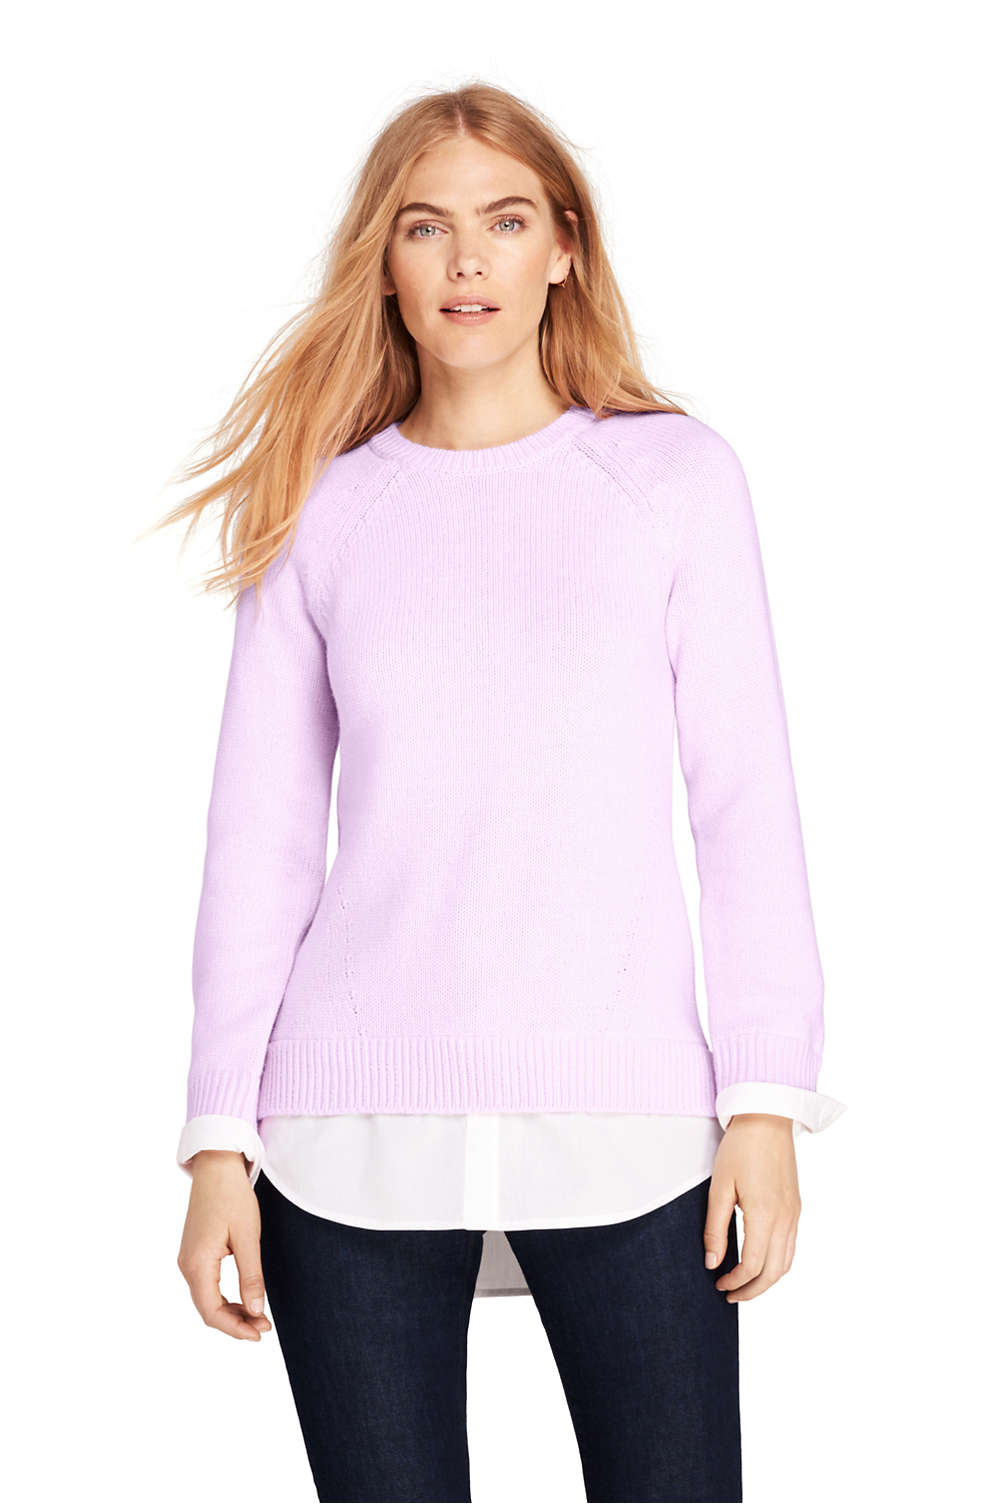 ff938a75090 Women s Lofty Blend-Woven Tunic Sweater from Lands  End